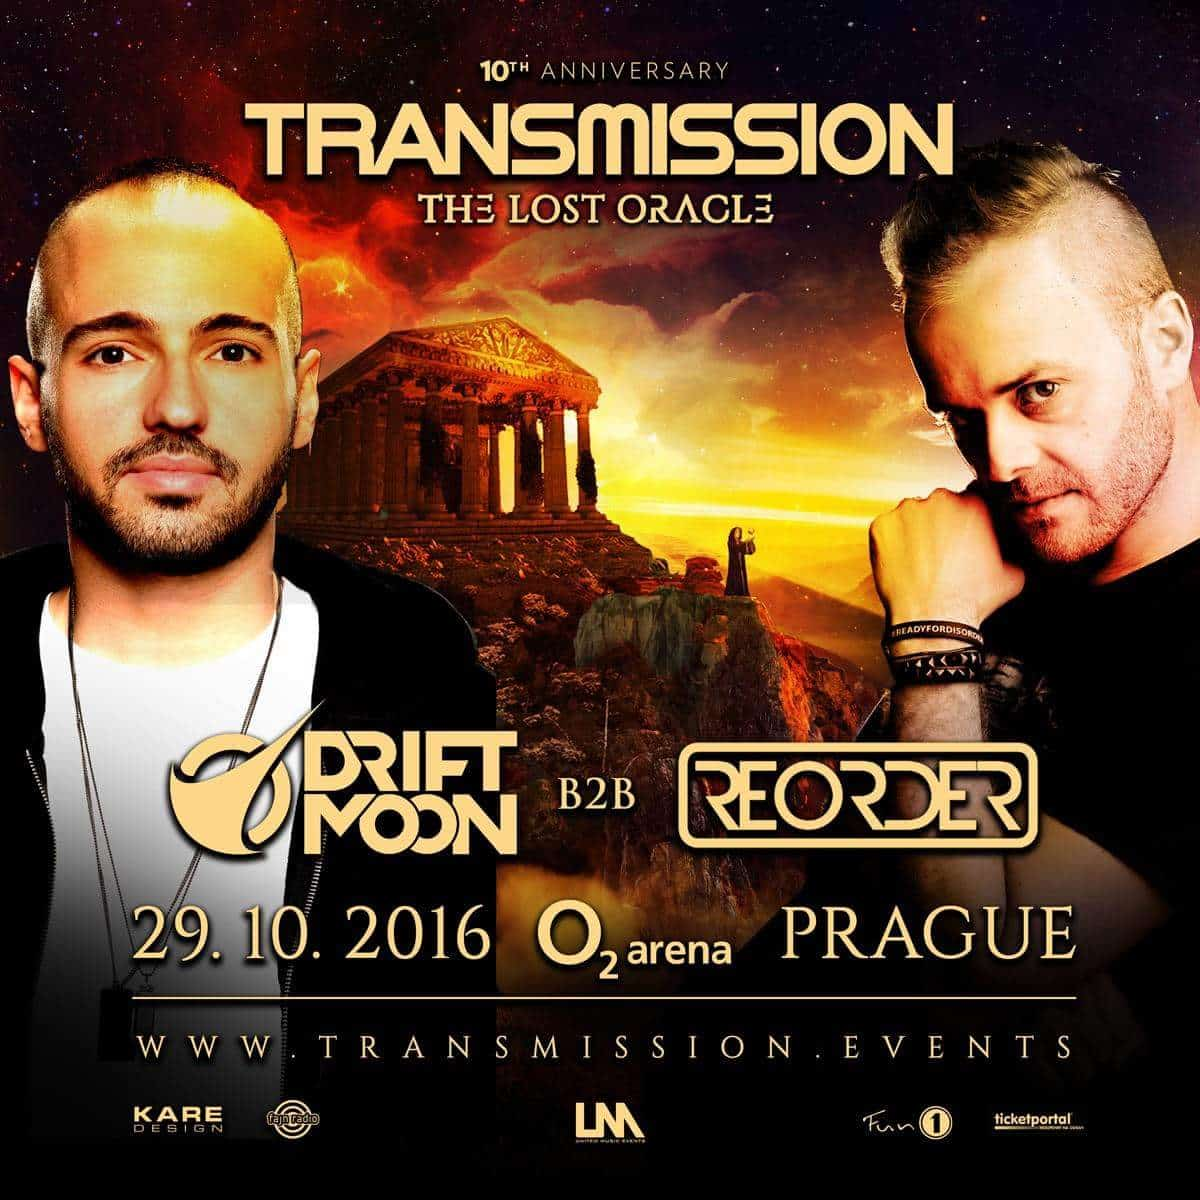 Driftmoon B2b ReOrder live at Transmission - The Lost Oracle (29.10.2016) @ Prague, Czech Republic